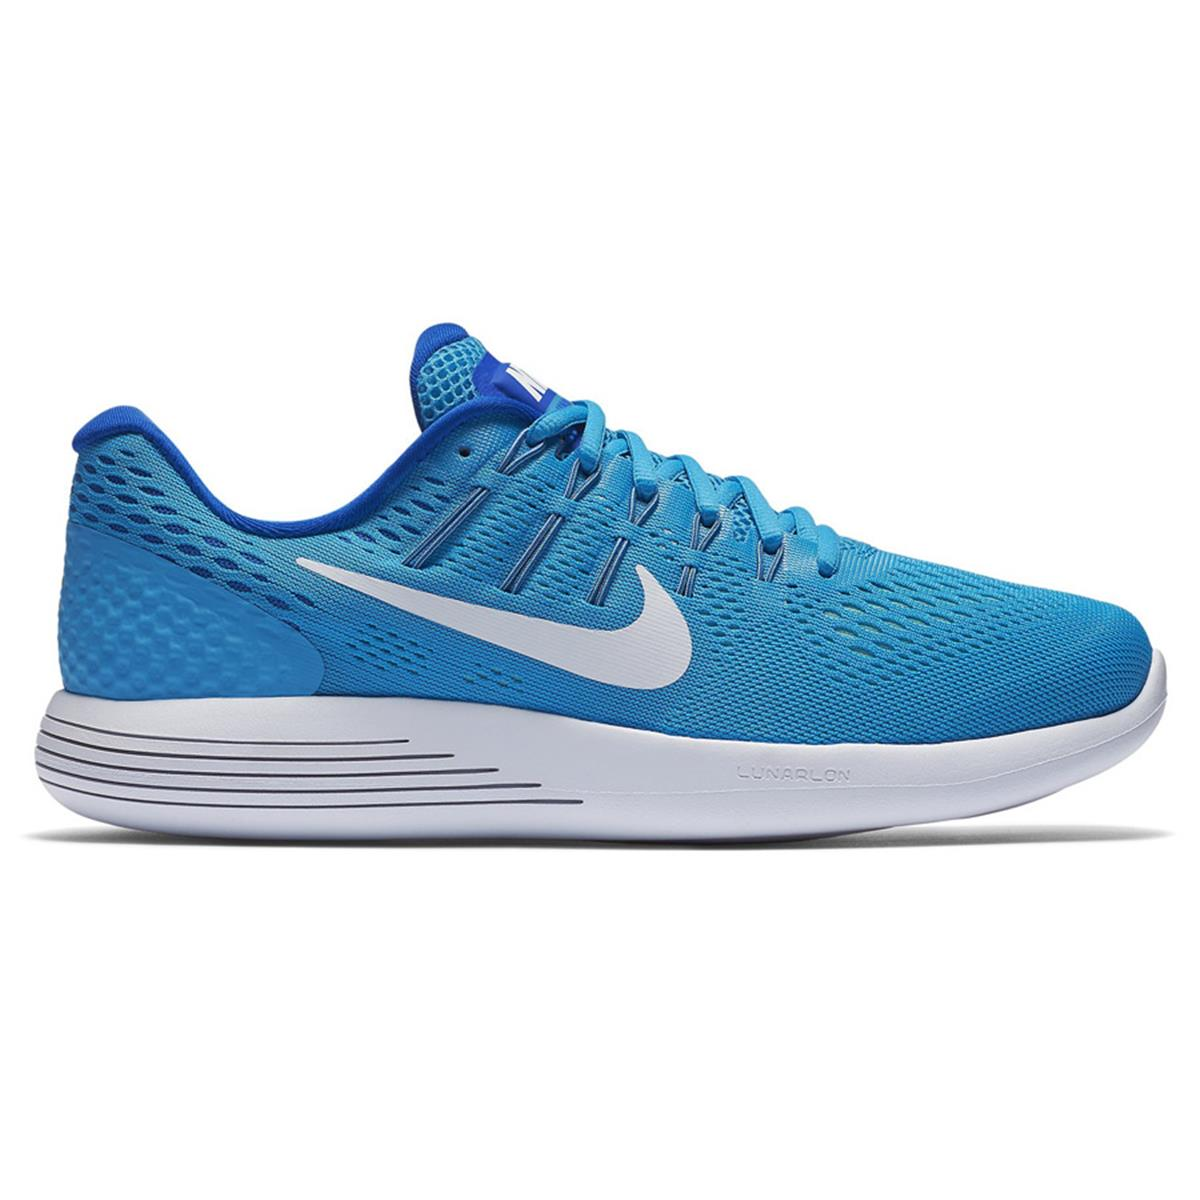 1c895aeeef5ea Nike Lunarglide 8 Womens Running Shoes (Blue)